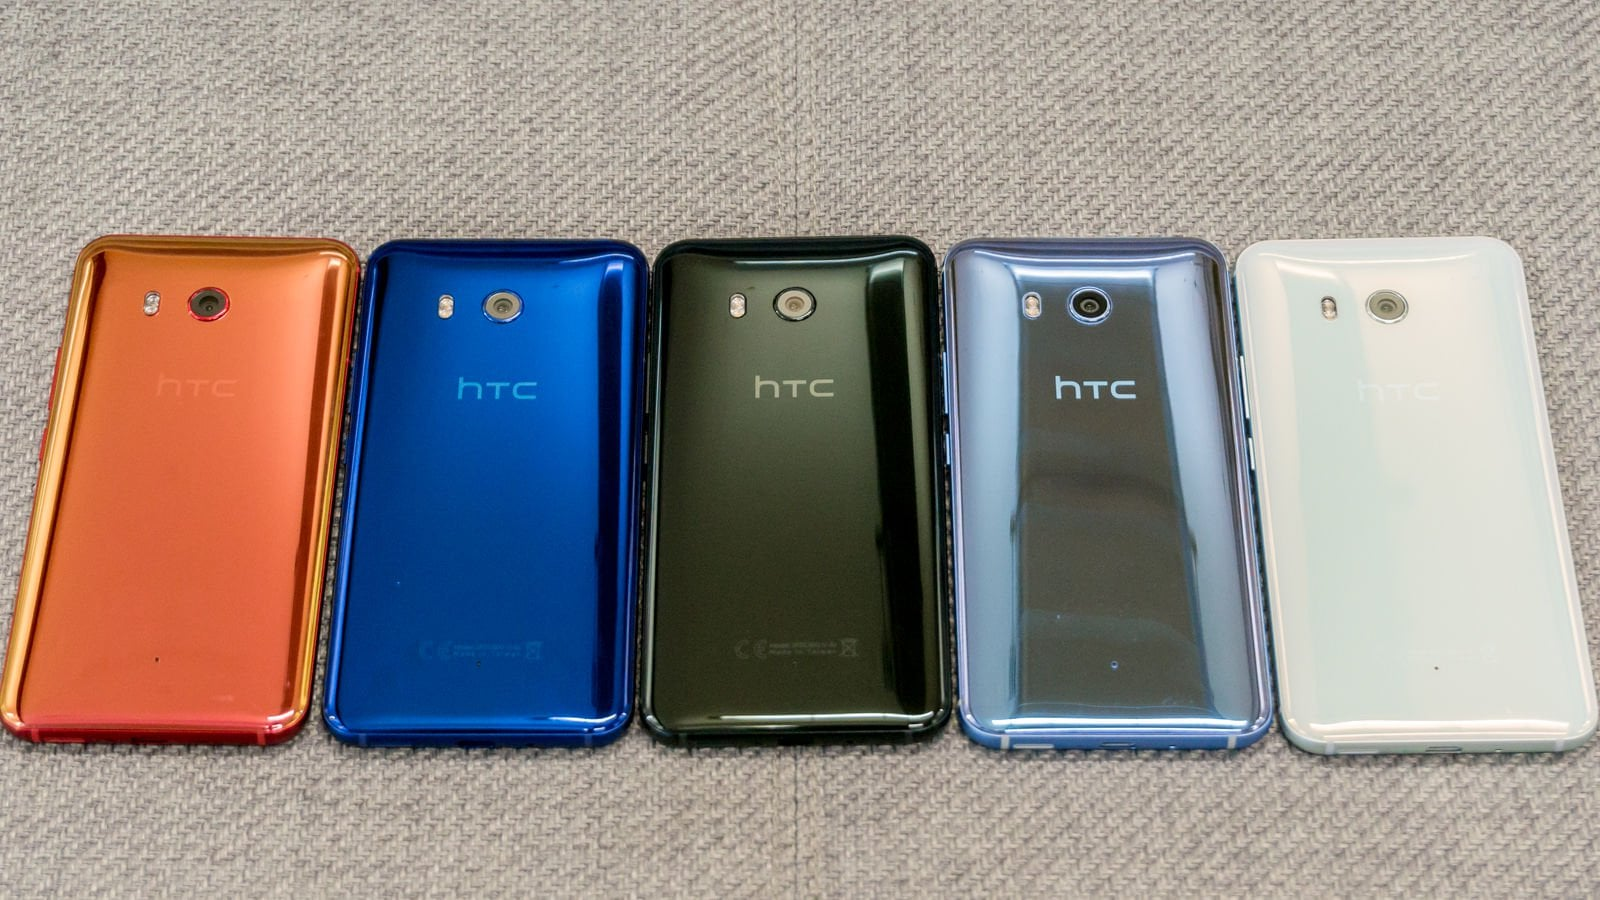 The HTC U11 has started its sale officially from the 9 June. Immediate shipments of the phone are available via HTC's website and on Amazon on its unlocked